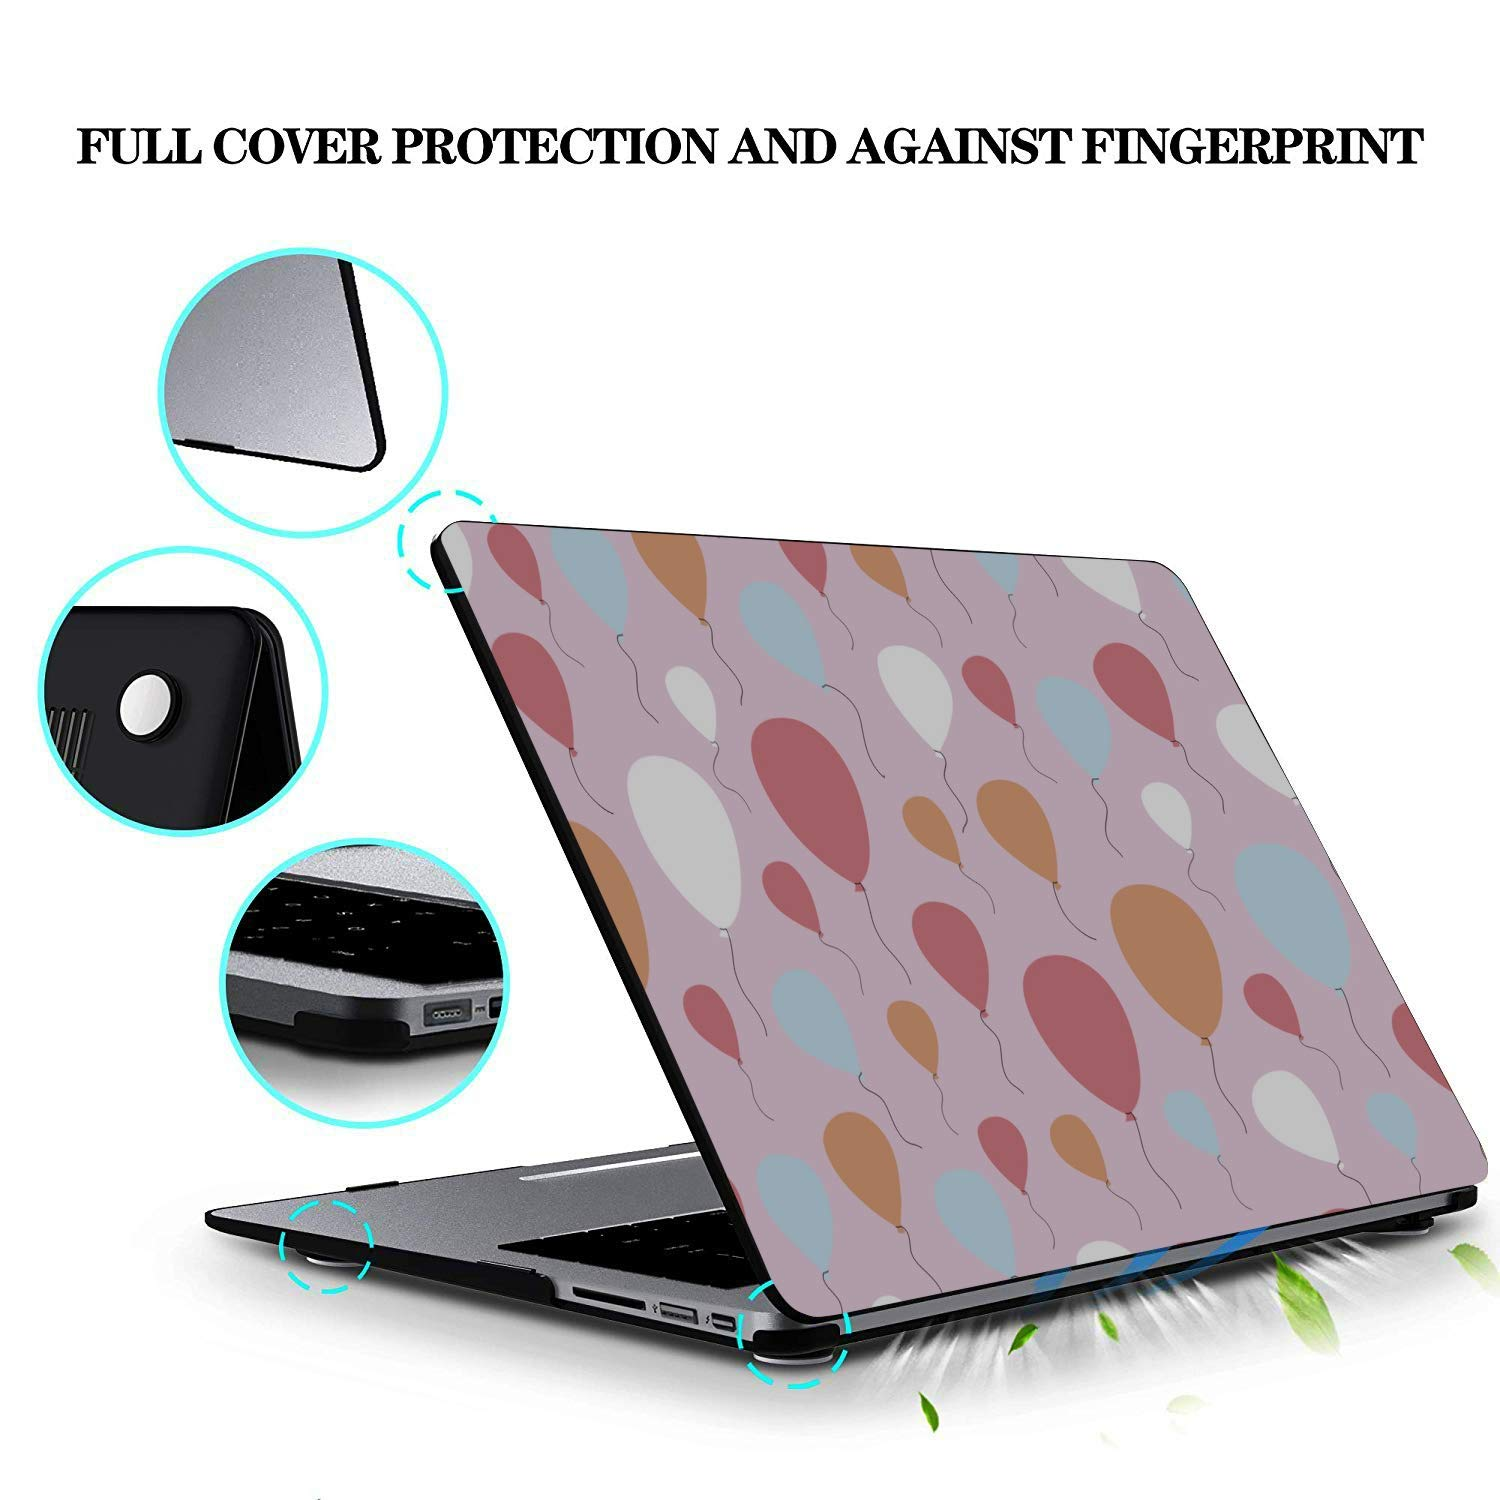 MacBook Accessories Surprise Colorful Party Balloons Plastic Hard Shell Compatible Mac Air 11 Pro 13 15 13inch MacBook Pro Case Protection for MacBook 2016-2019 Version